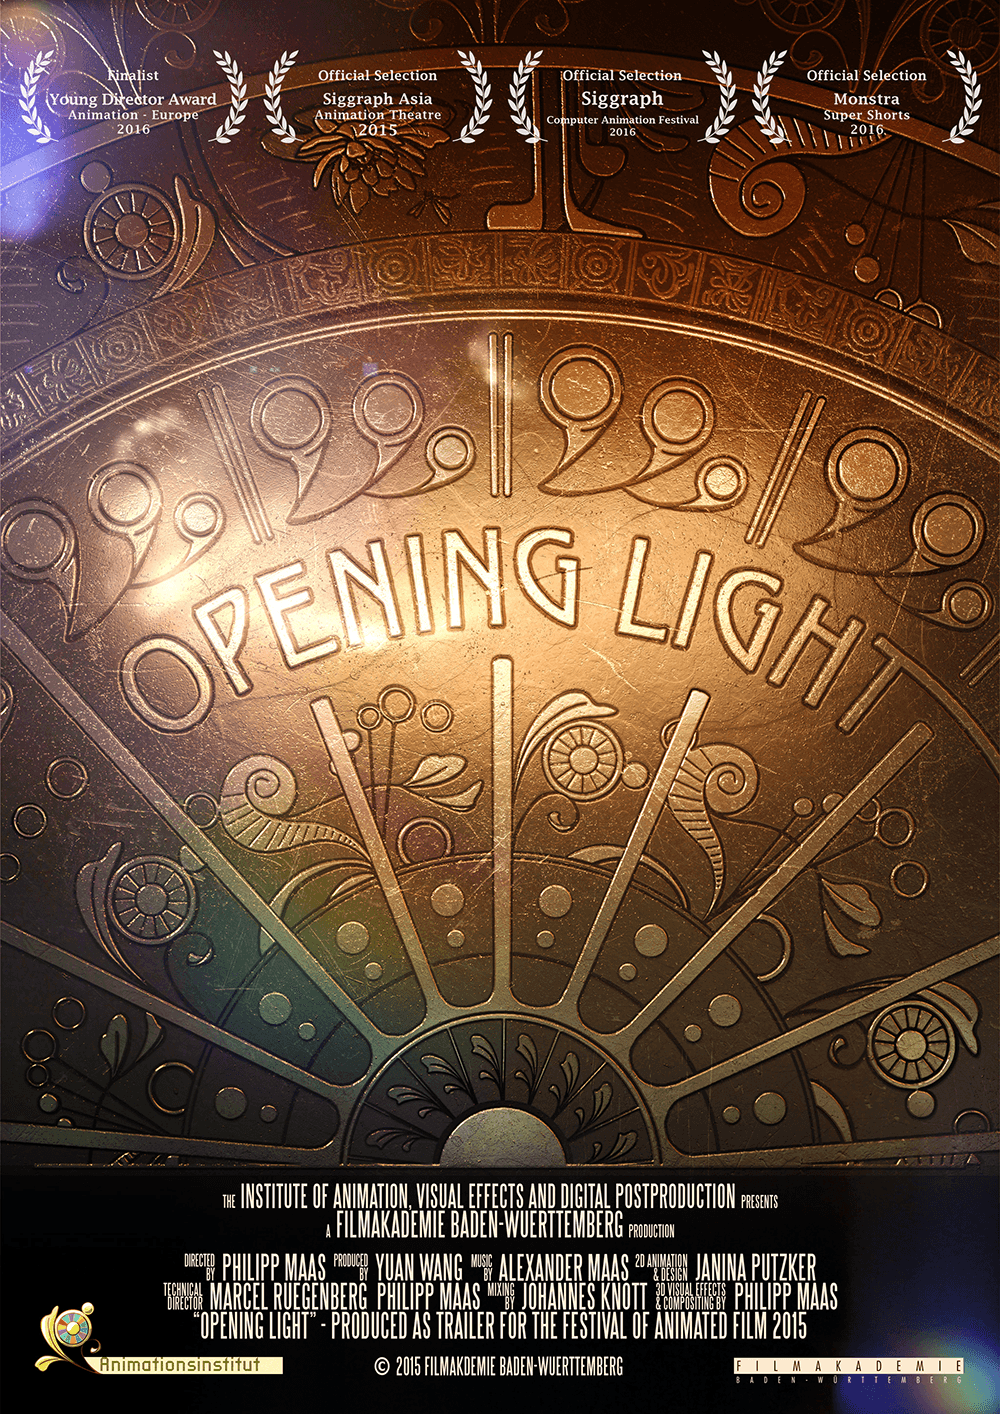 Opening Light Poster Trailer for the festival of animated film Stuttgart